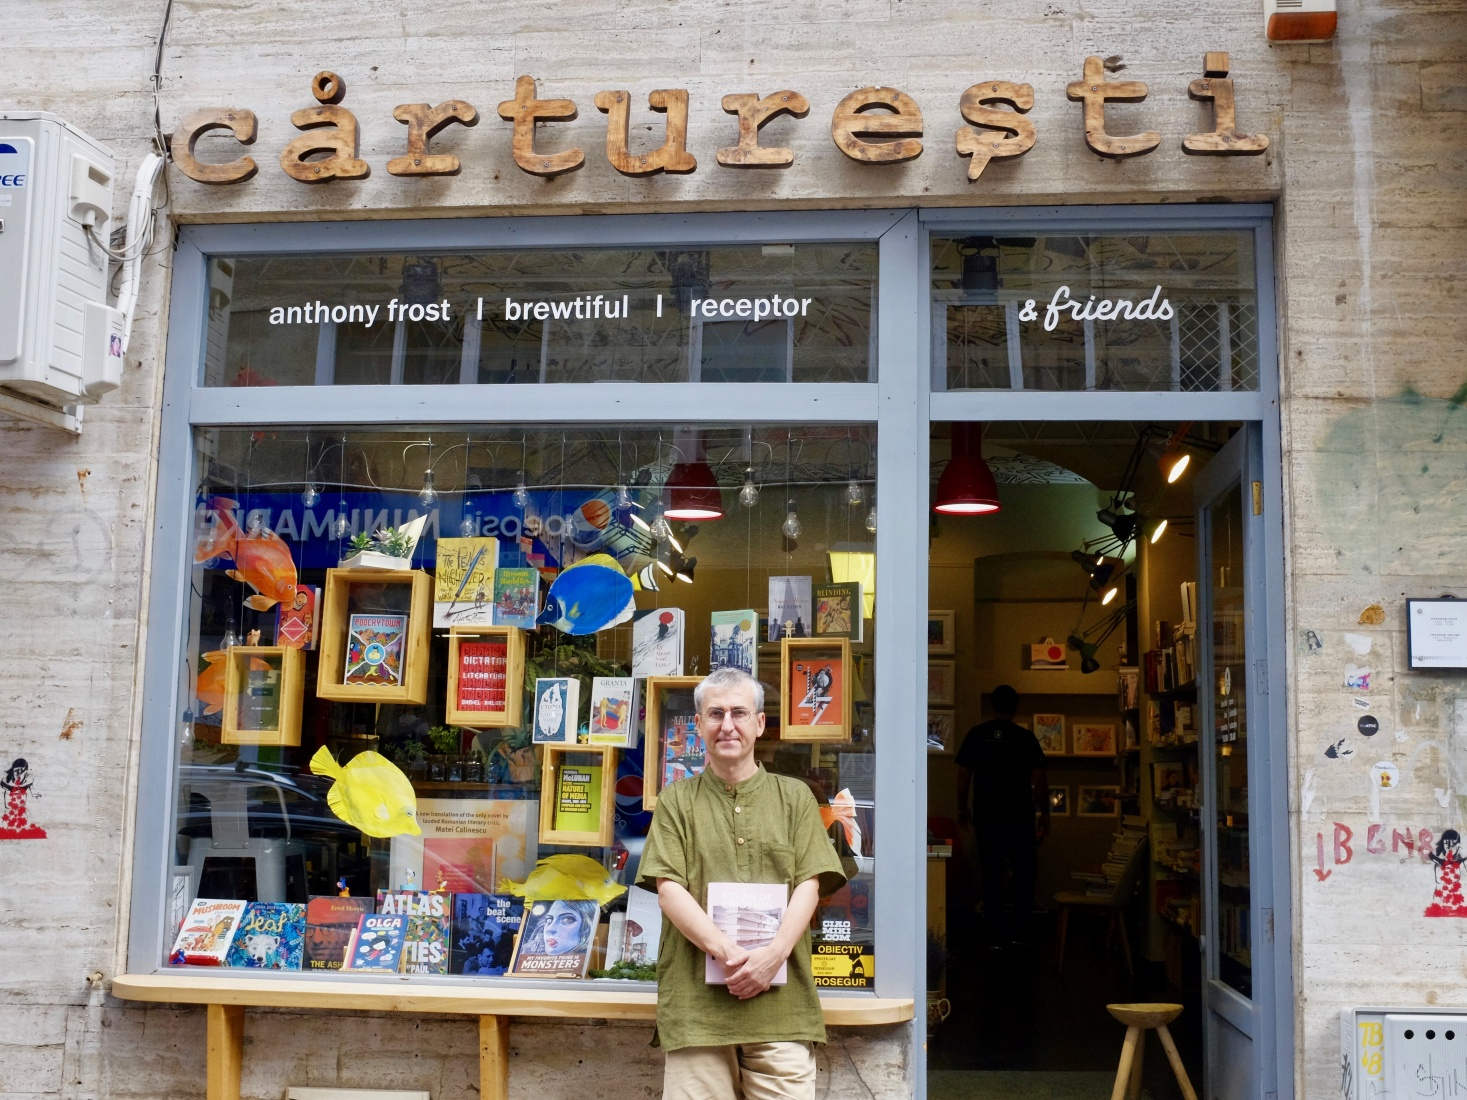 'Cărturești & Friends' owner-operator Vlad Niculescu in front of his reinvigorated storefront in Bucharest, Romania.